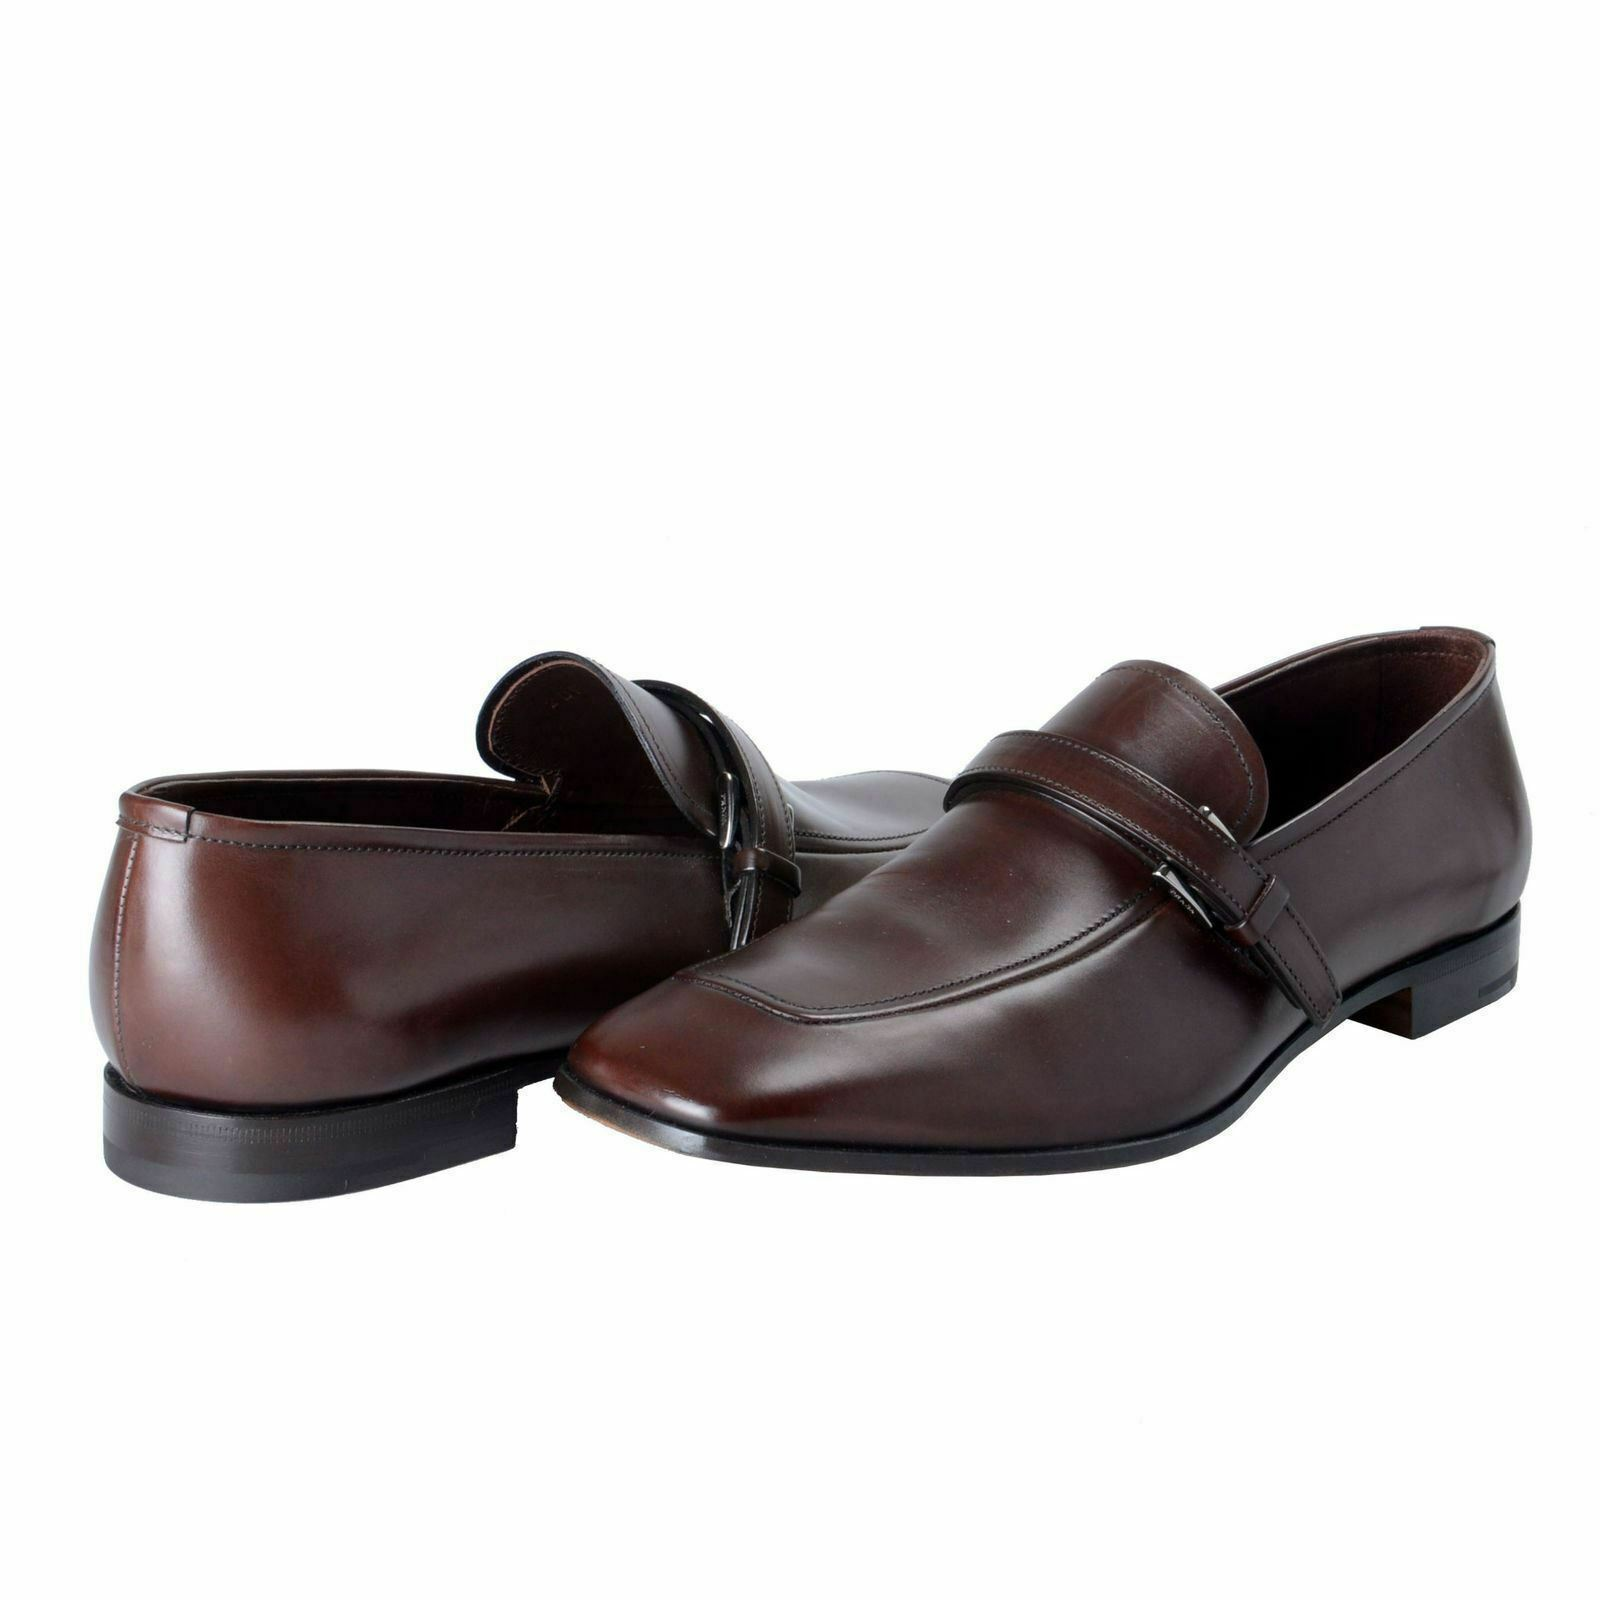 f44a2de9b4b Details about Prada Men s Chocolate Brown Leather Loafers Slip On Shoes US  11 IT 10 EU 44